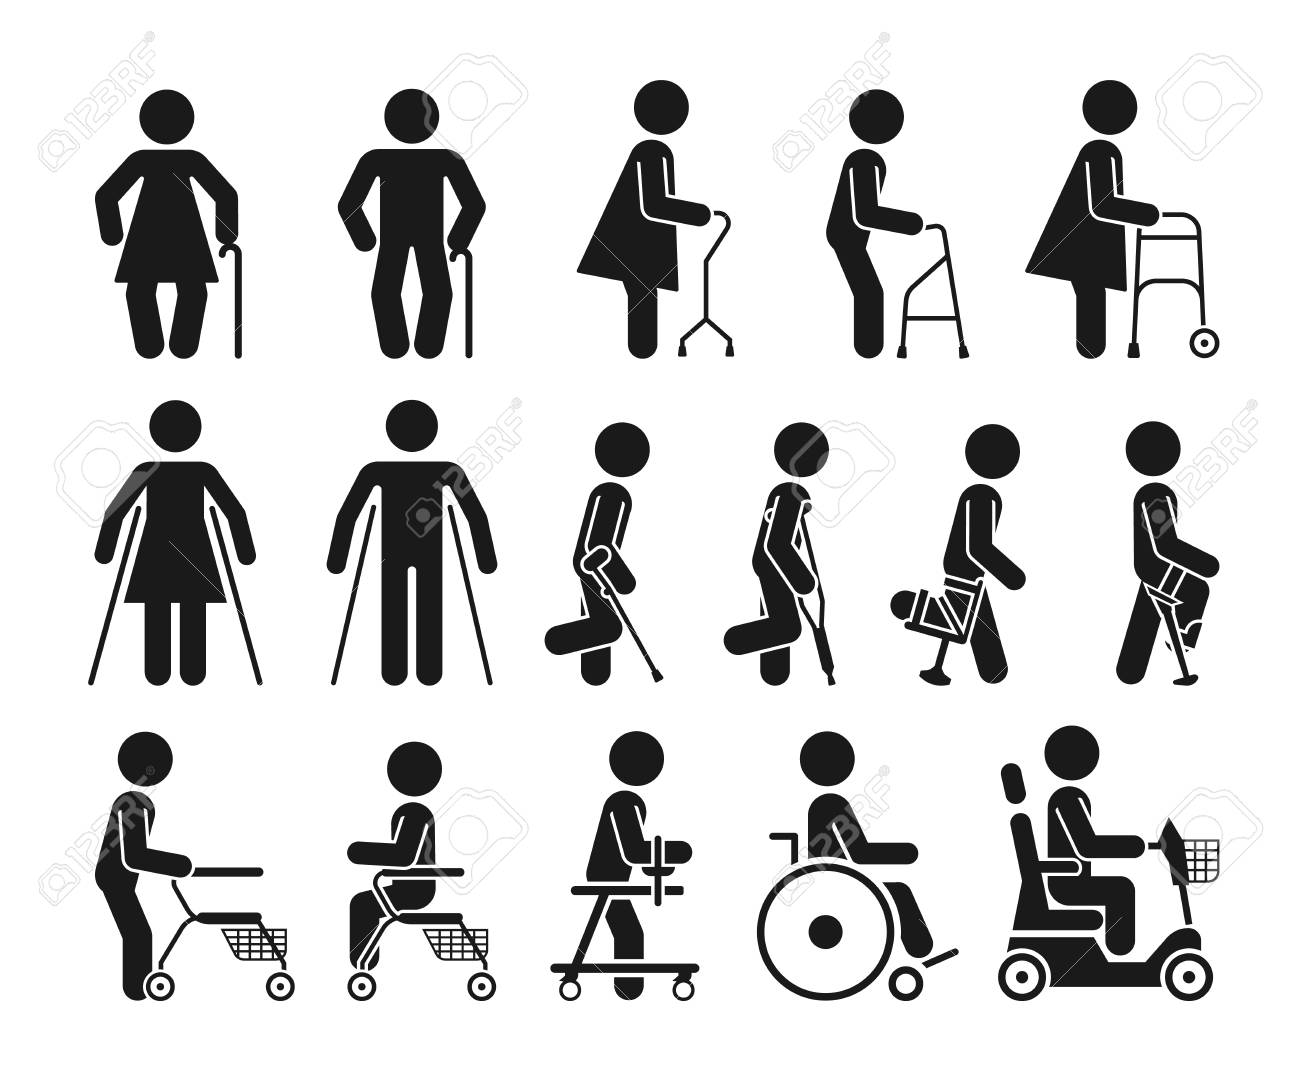 Set of icons which represent people using various orthopedic equipment. Pictograms that represent handicapped, elderly and injured people who use orthopedic accessories and wheel chair to help them move. - 90149019